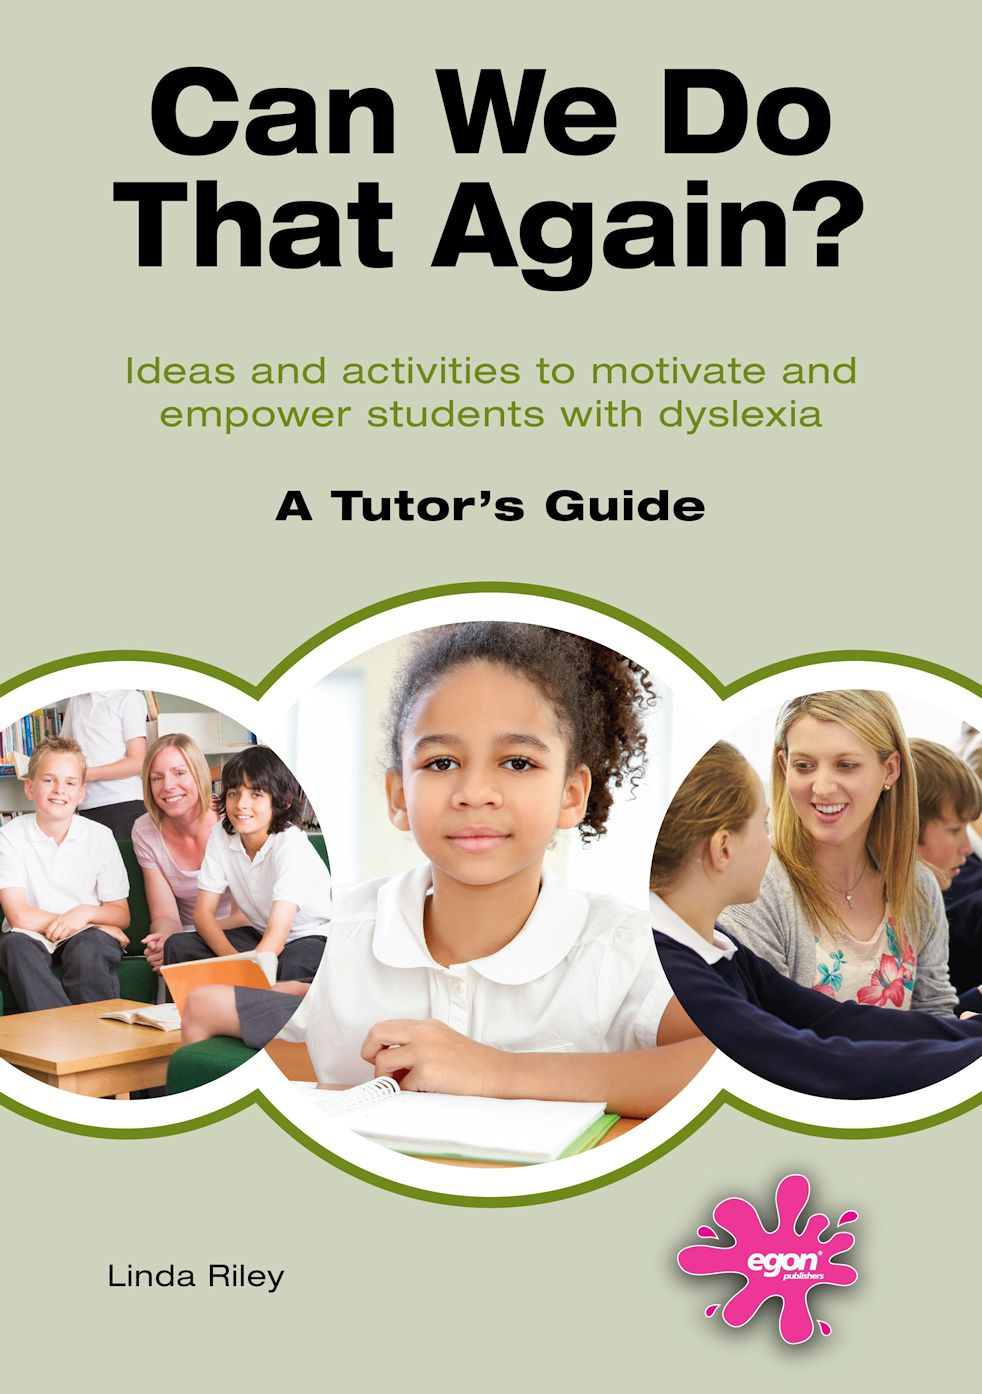 Can We Do That Again_Tutor Guide